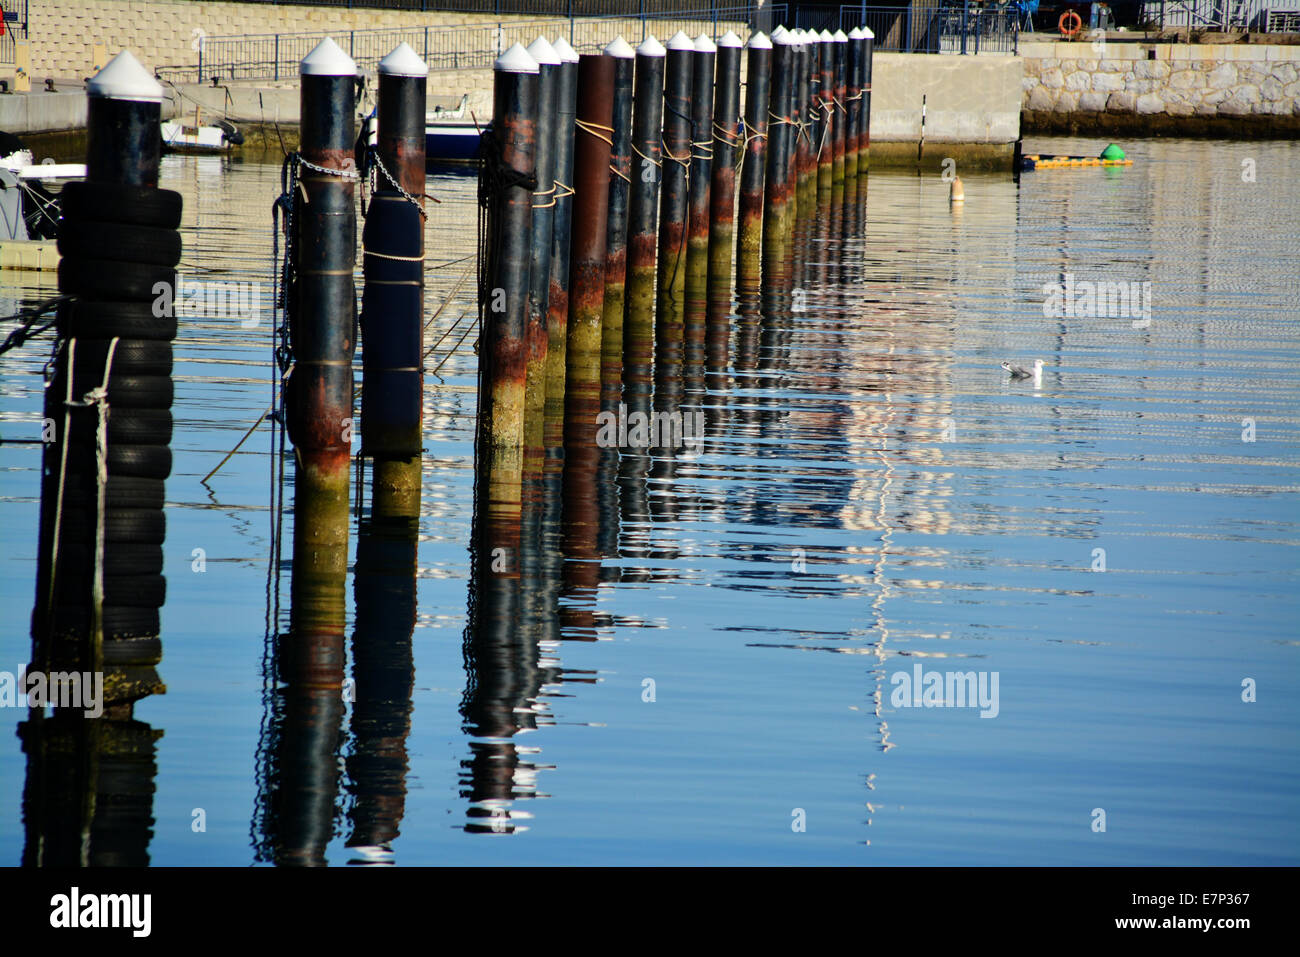 Berthing poles at Queensway Quay Marina in Gibraltar for the town house and apartments. Marina berths and moorings. - Stock Image